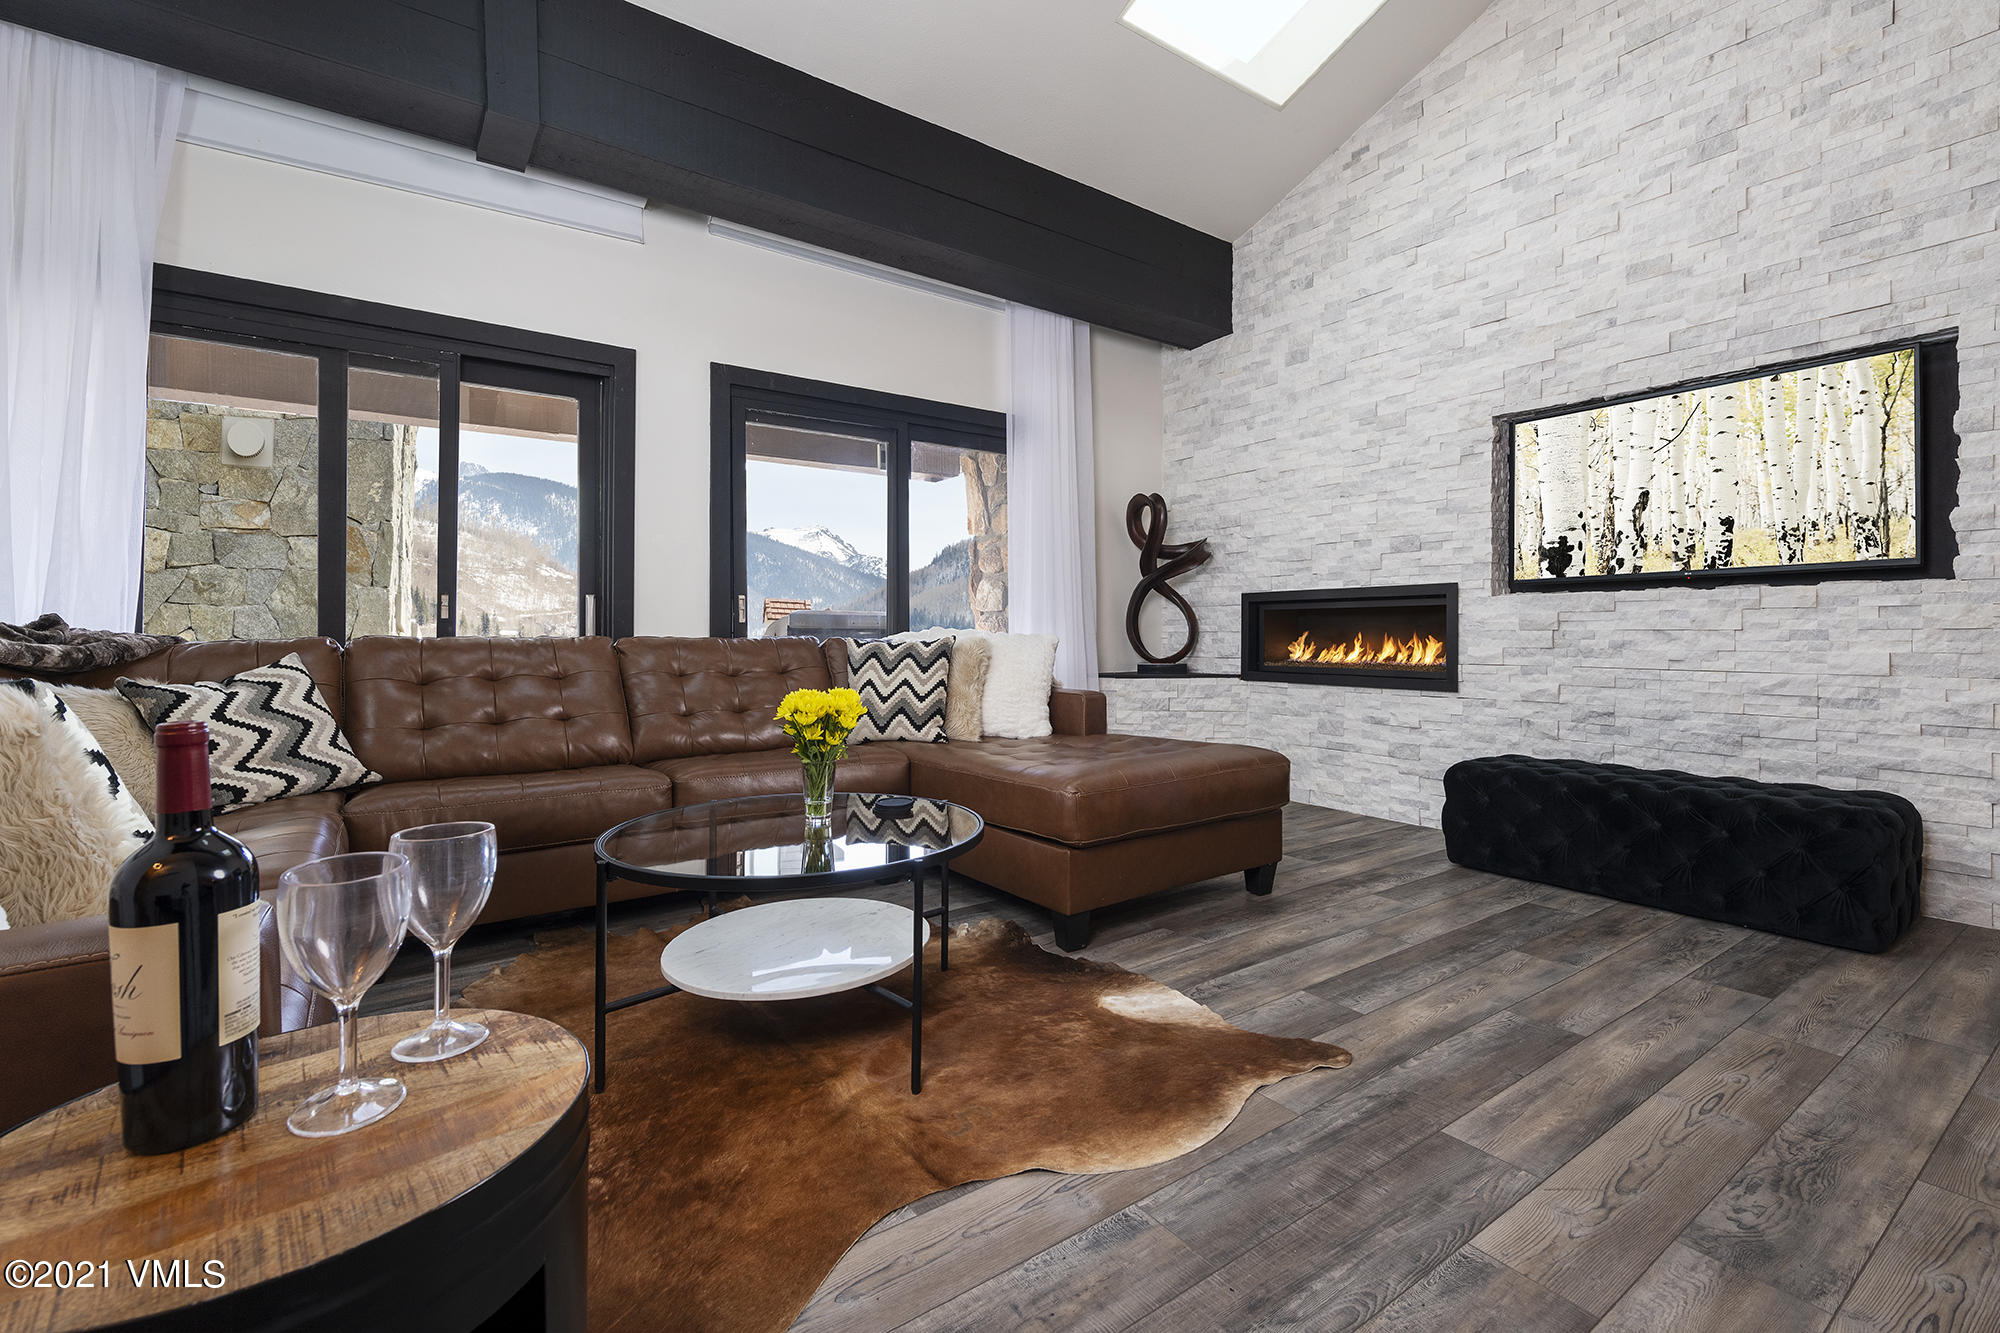 Enjoy penthouse living at The Enzian in the heart of Lionshead Village! This completely remodeled, top-floor end unit has vaulted ceilings creating vertical volume and skylights streaming in sun at just the right angles throughout the day.With 5 bedrooms plus a loft for additional sleeping or a kids play area and movie room, there is space for everyone!  Luxuries include 2 assigned underground parking spots, an elevator and owner-useage of the Landmark's pool and hot tub. With solid rental history, ample owner storage, and furnished with contemporary decor, this is a must see!